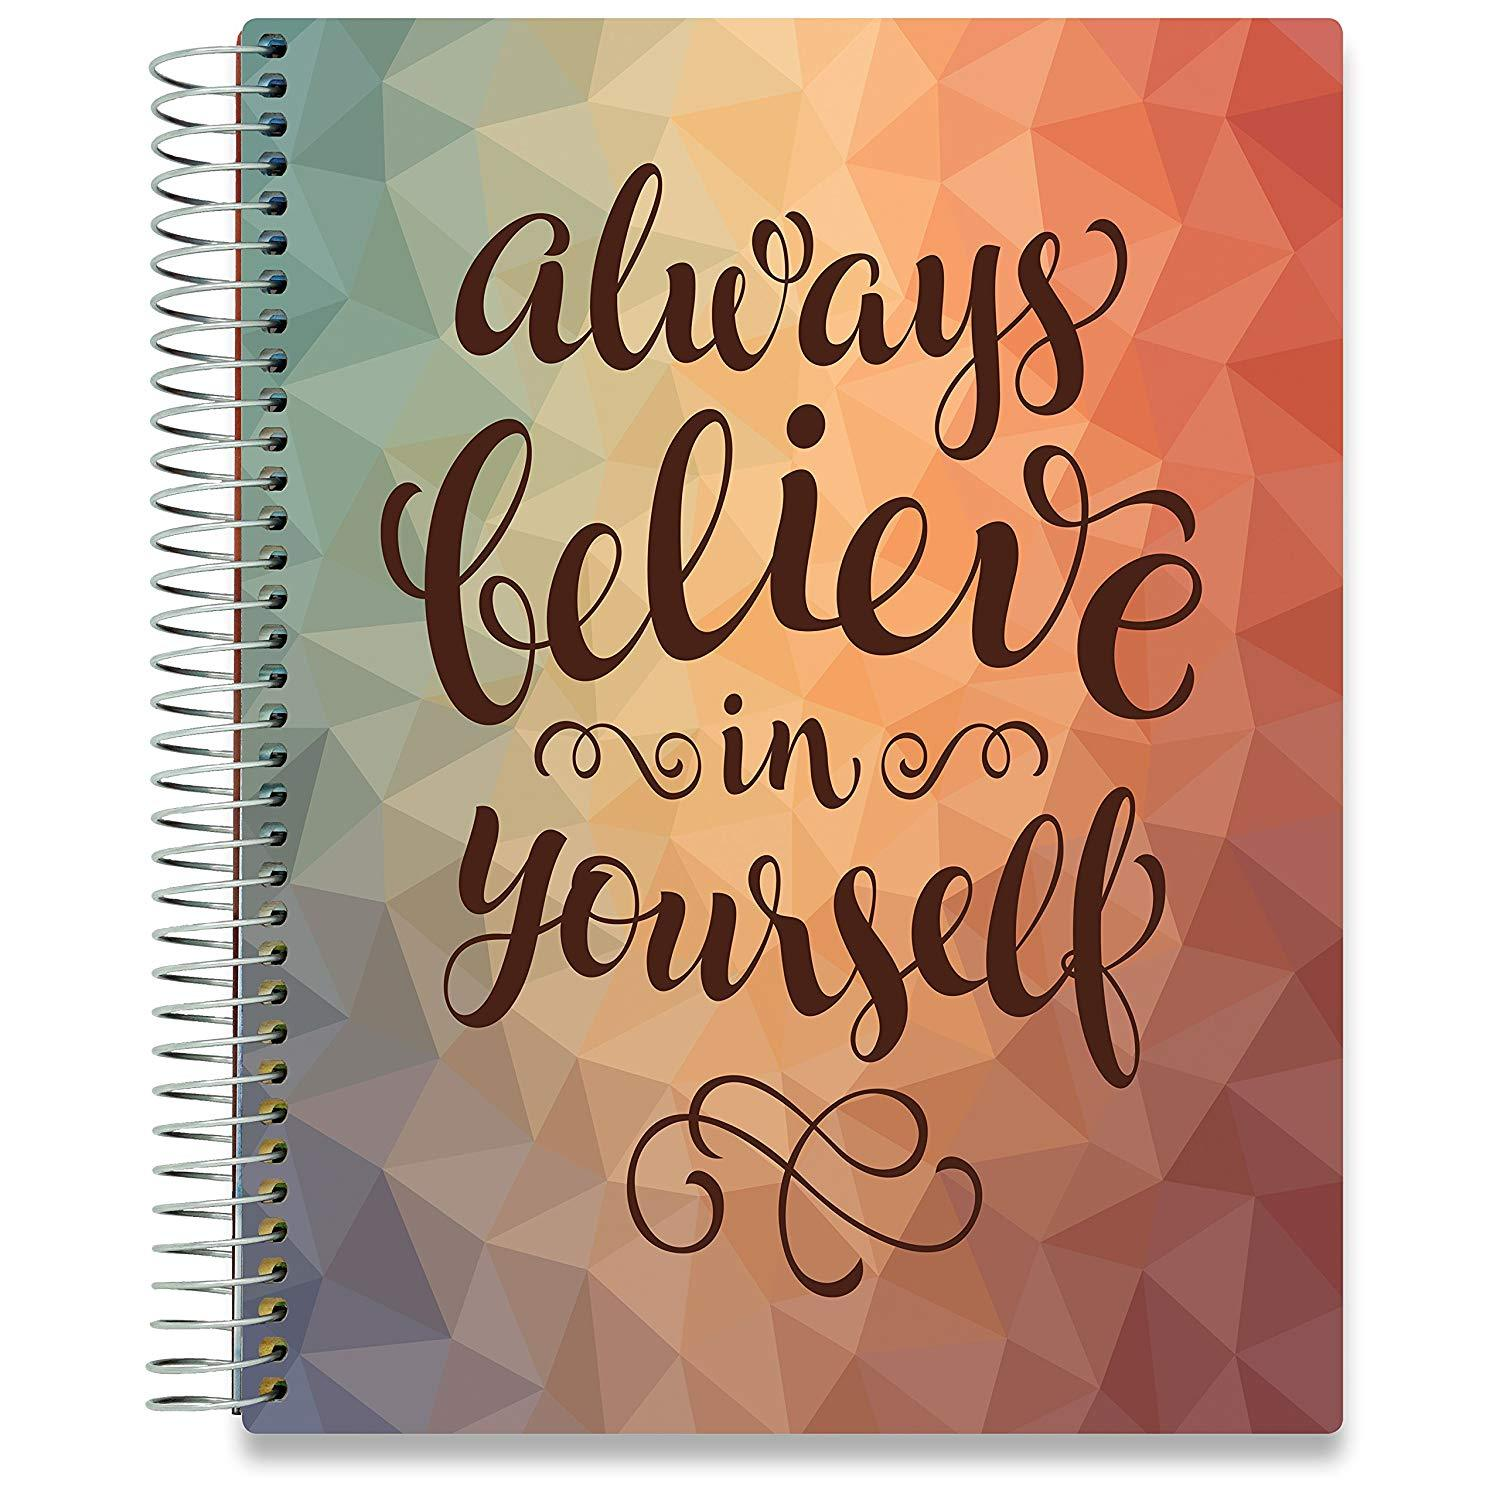 NEW: April 2020-2021 Planner - 8.5x11 - Always Believe-Office Product-Tools4Wisdom